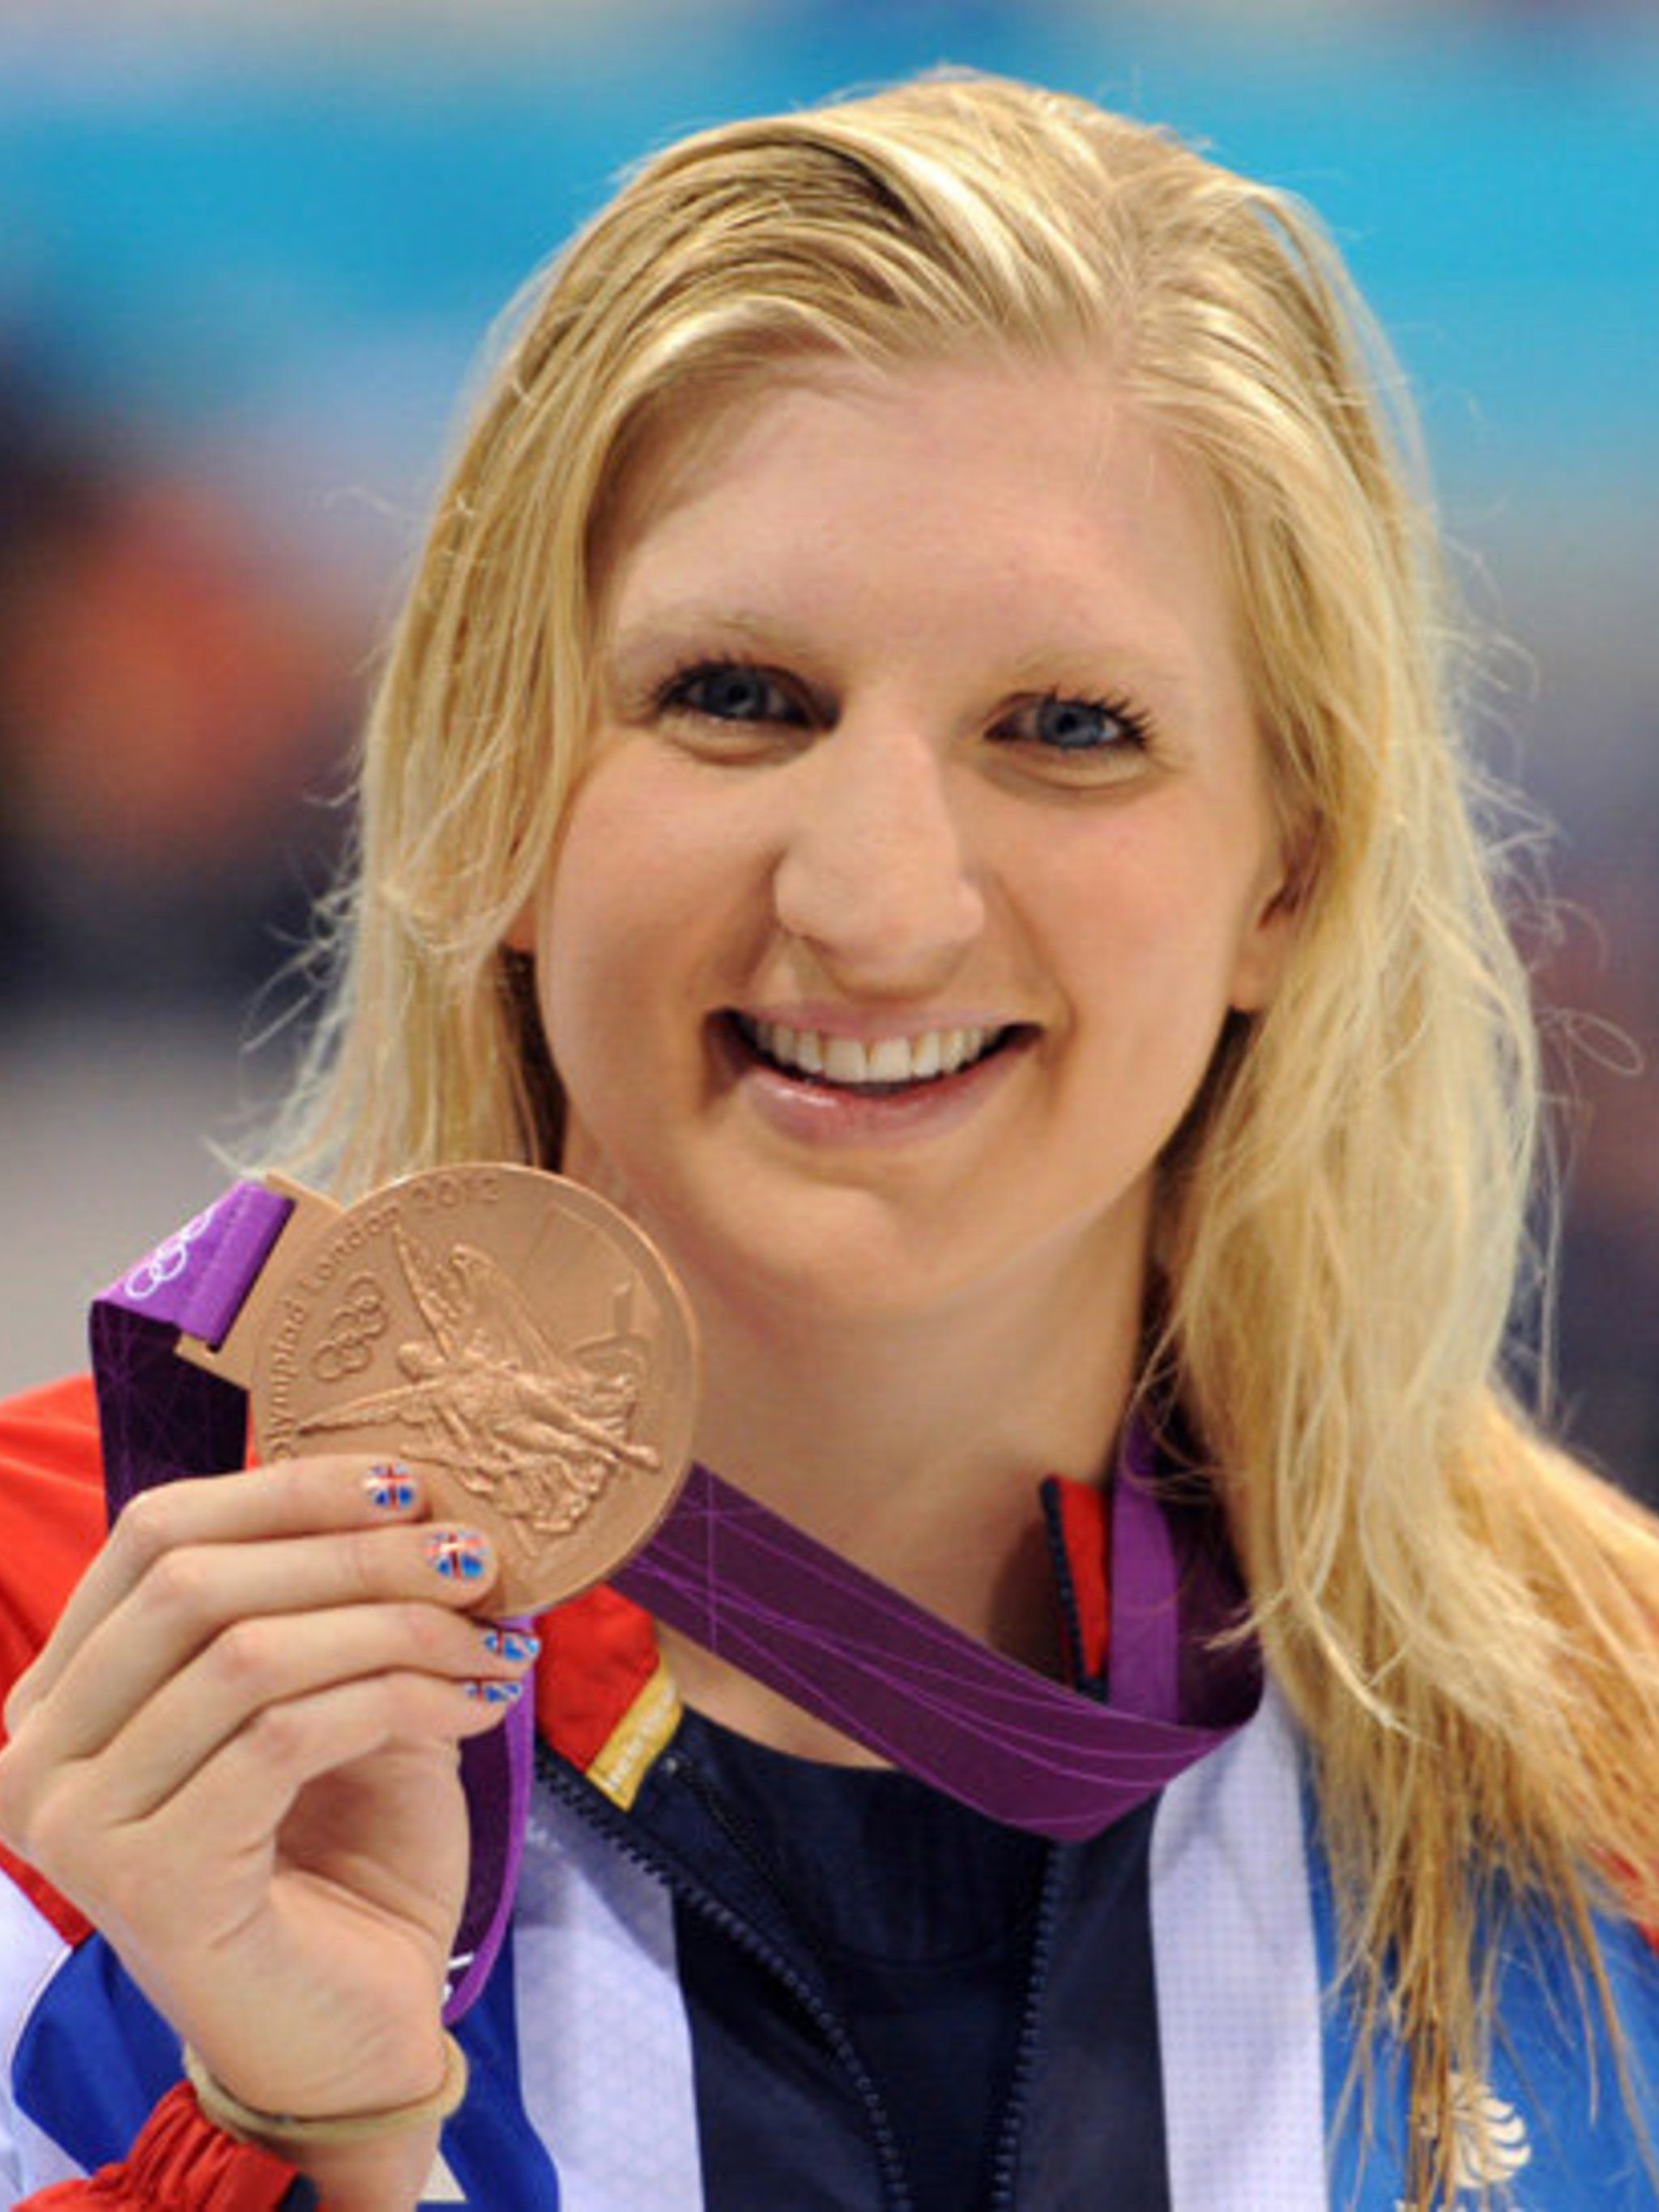 <p>Rebecca Adlington, with her bronze medal for the 400m Women's Freestyle Swimming and her Nail Porn nails</p>